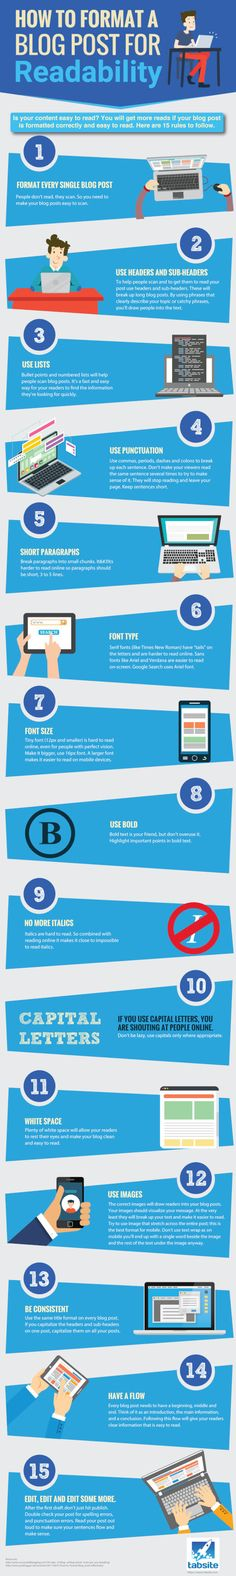 How to Format a Blog Post for Readability #infographic